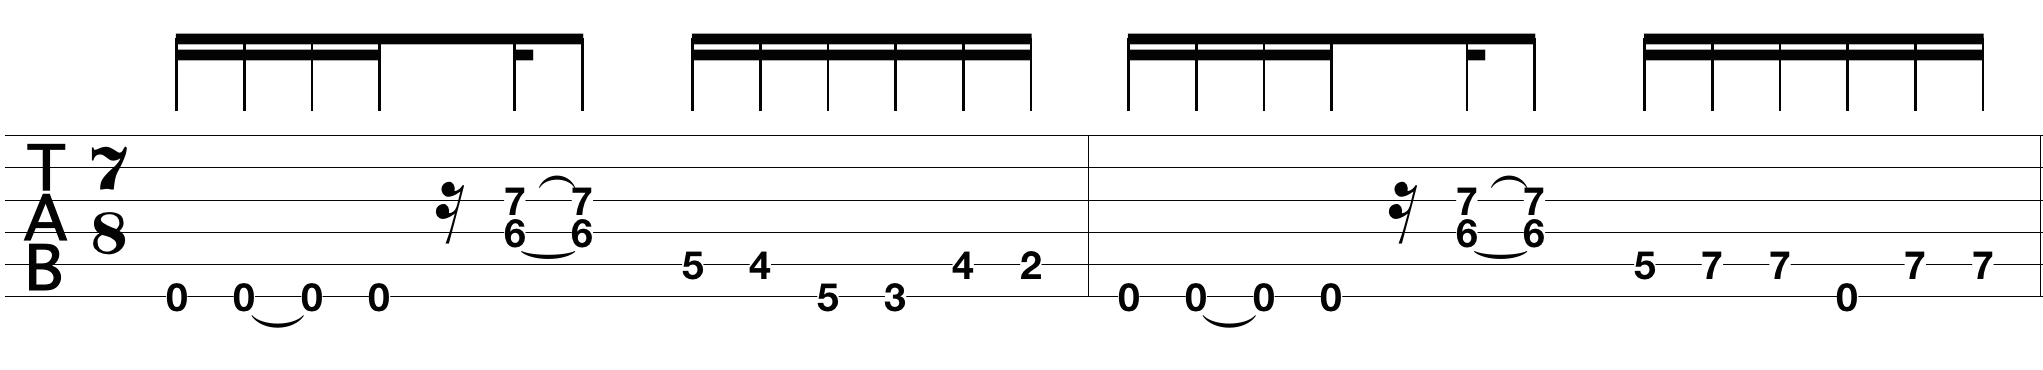 learn-guitar-riffs_1.png